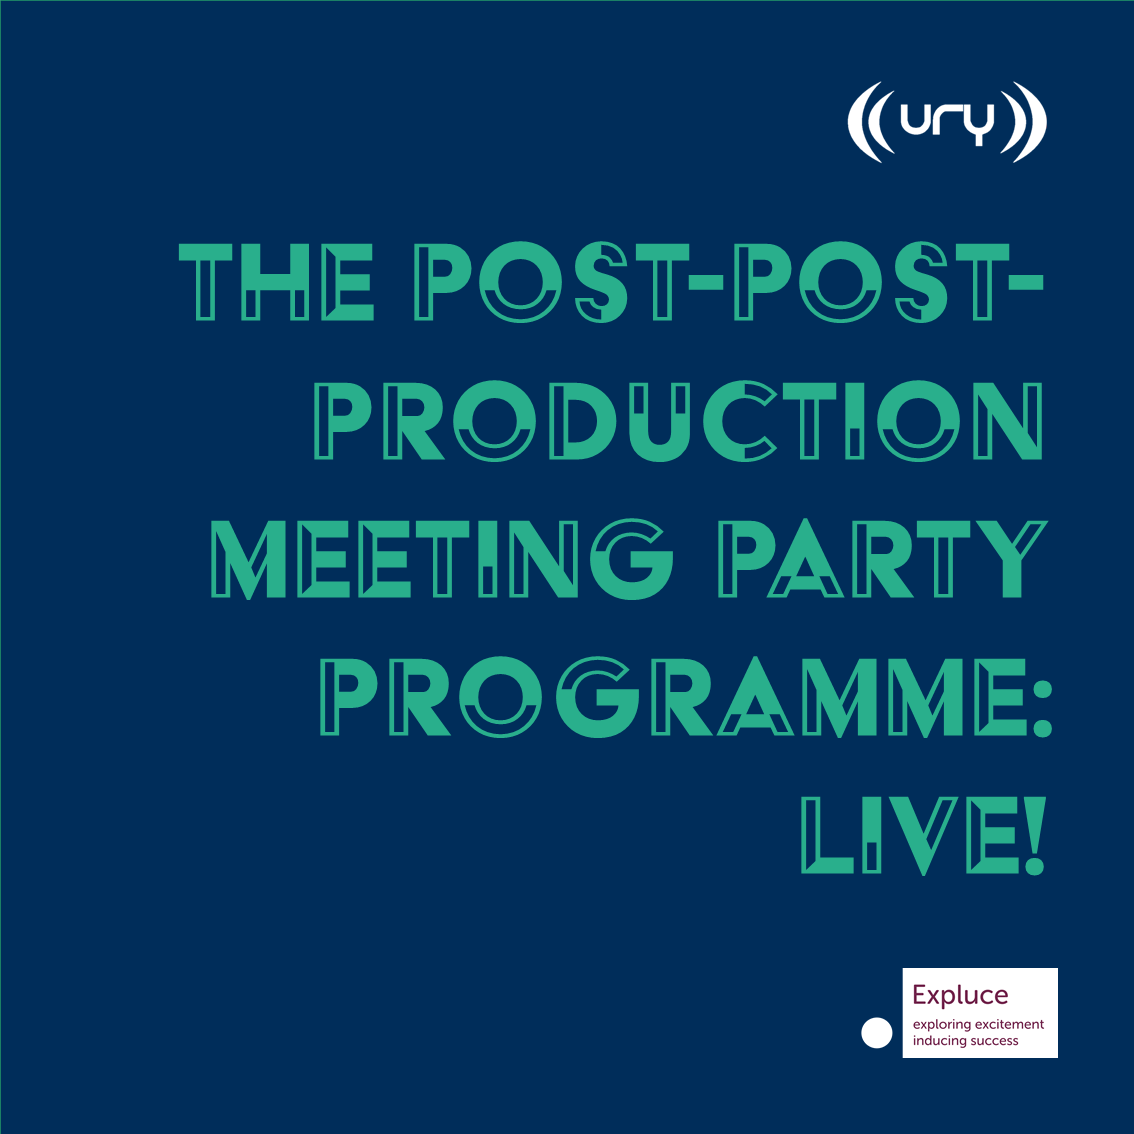 The Post-Post-Production Meeting Party Programme: Live! Logo